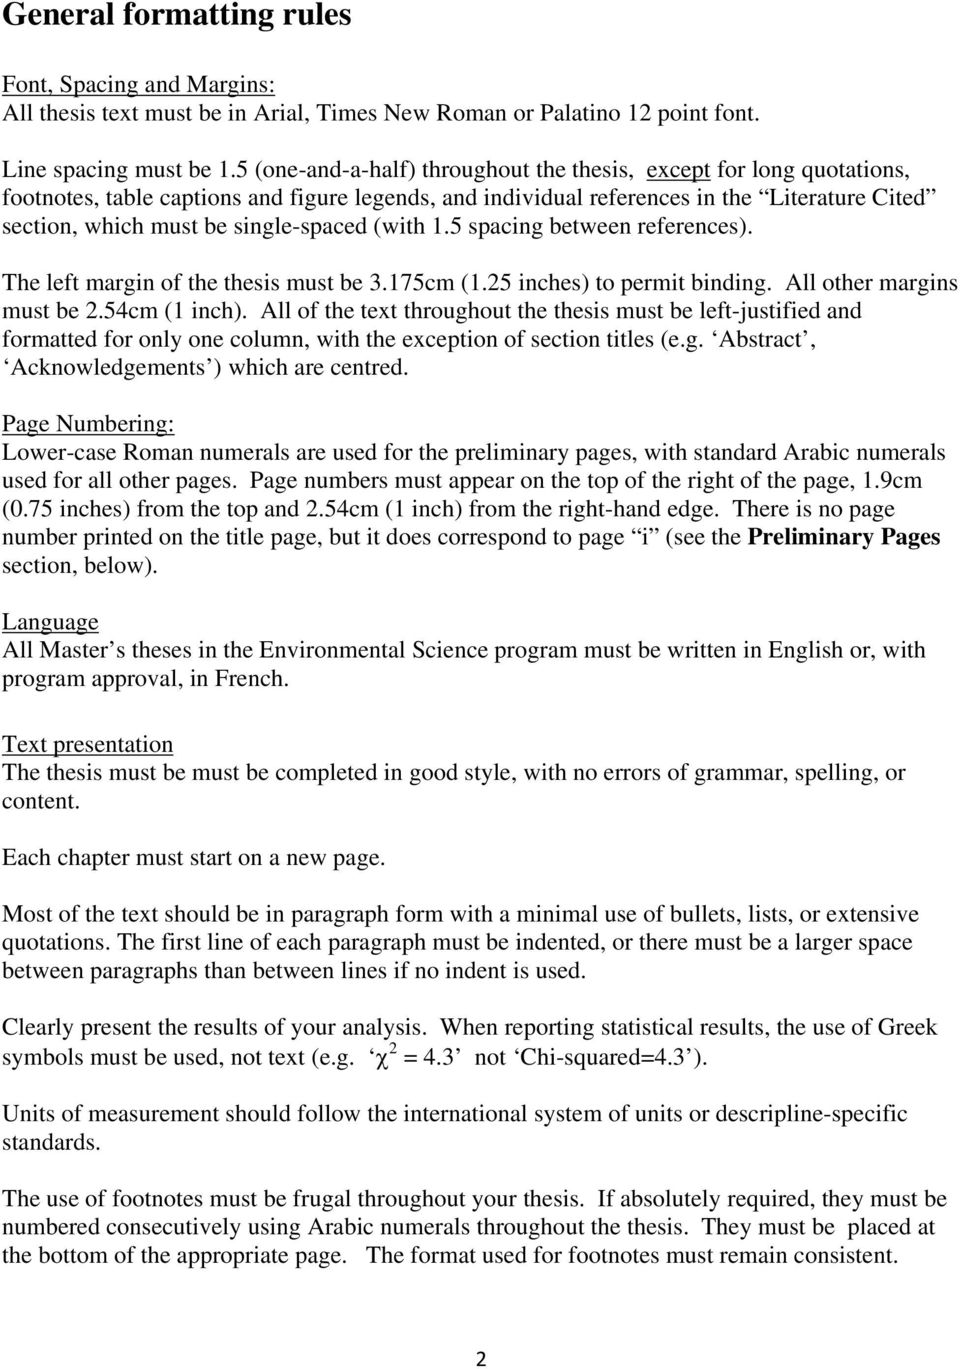 single-spaced (with 1.5 spacing between references). The left margin of the thesis must be 3.175cm (1.25 inches) to permit binding. All other margins must be 2.54cm (1 inch).